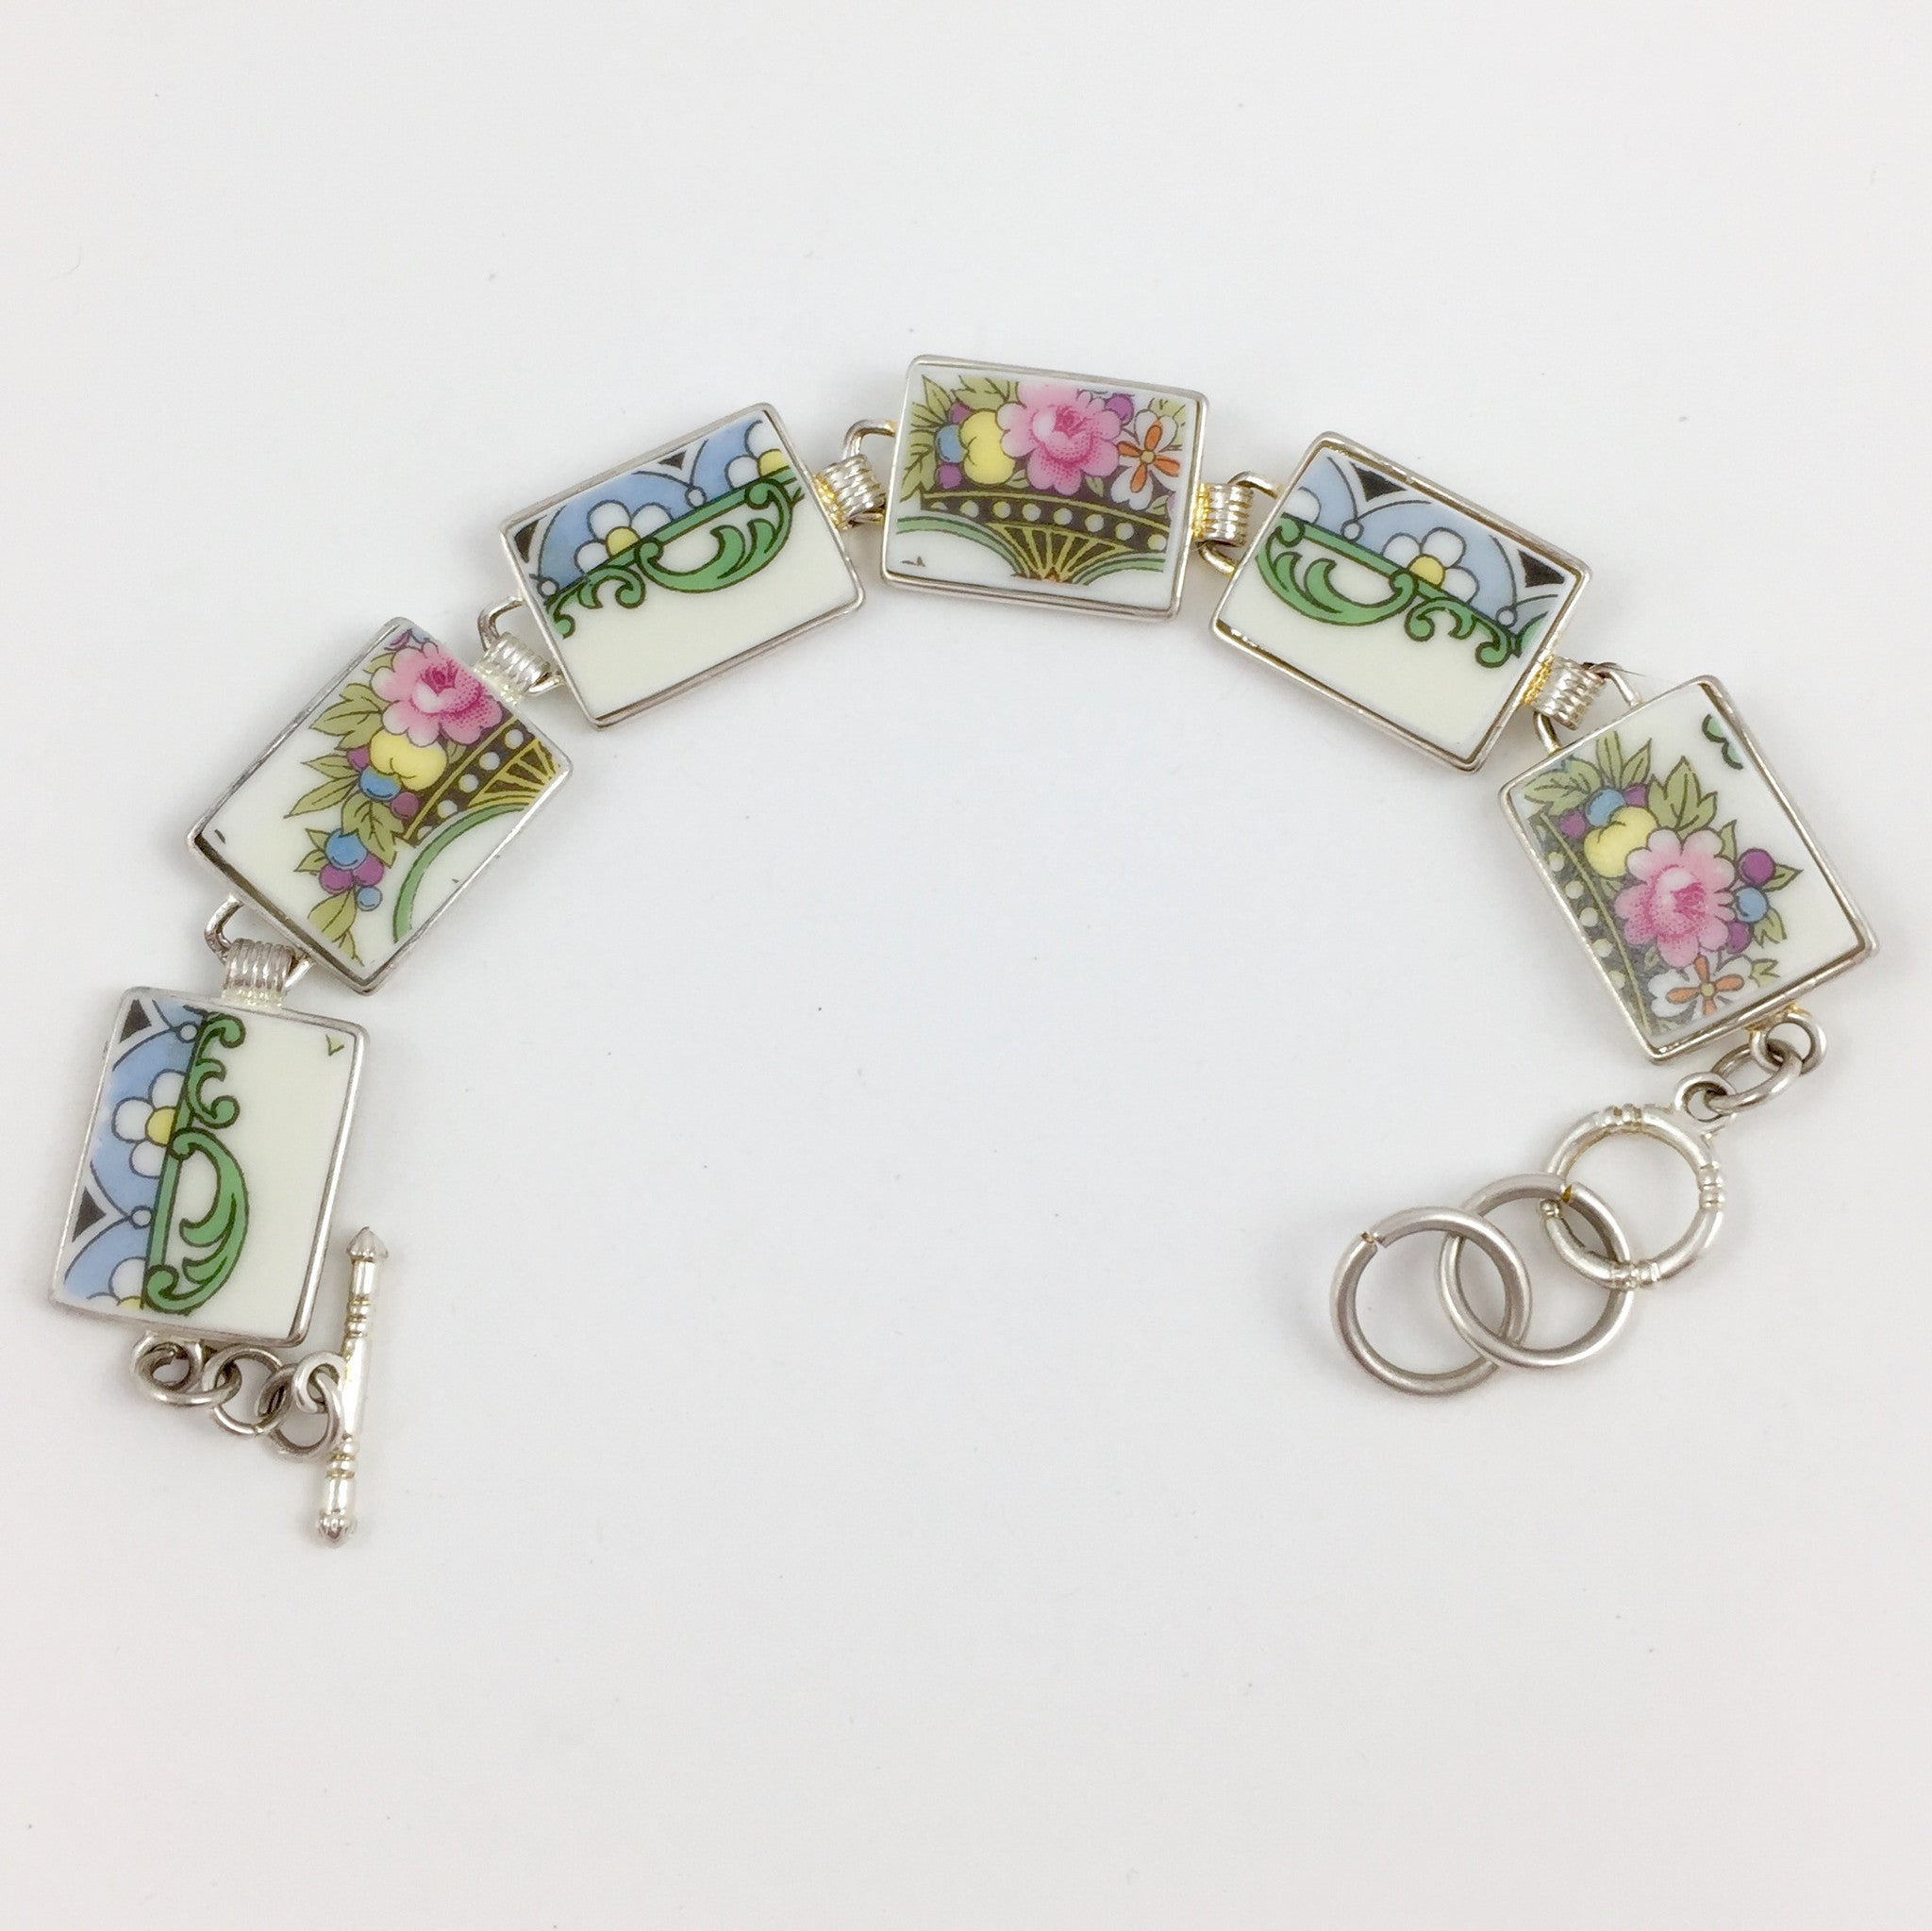 Broken China Jewelry - Pastel Plate Section Bracelet full image